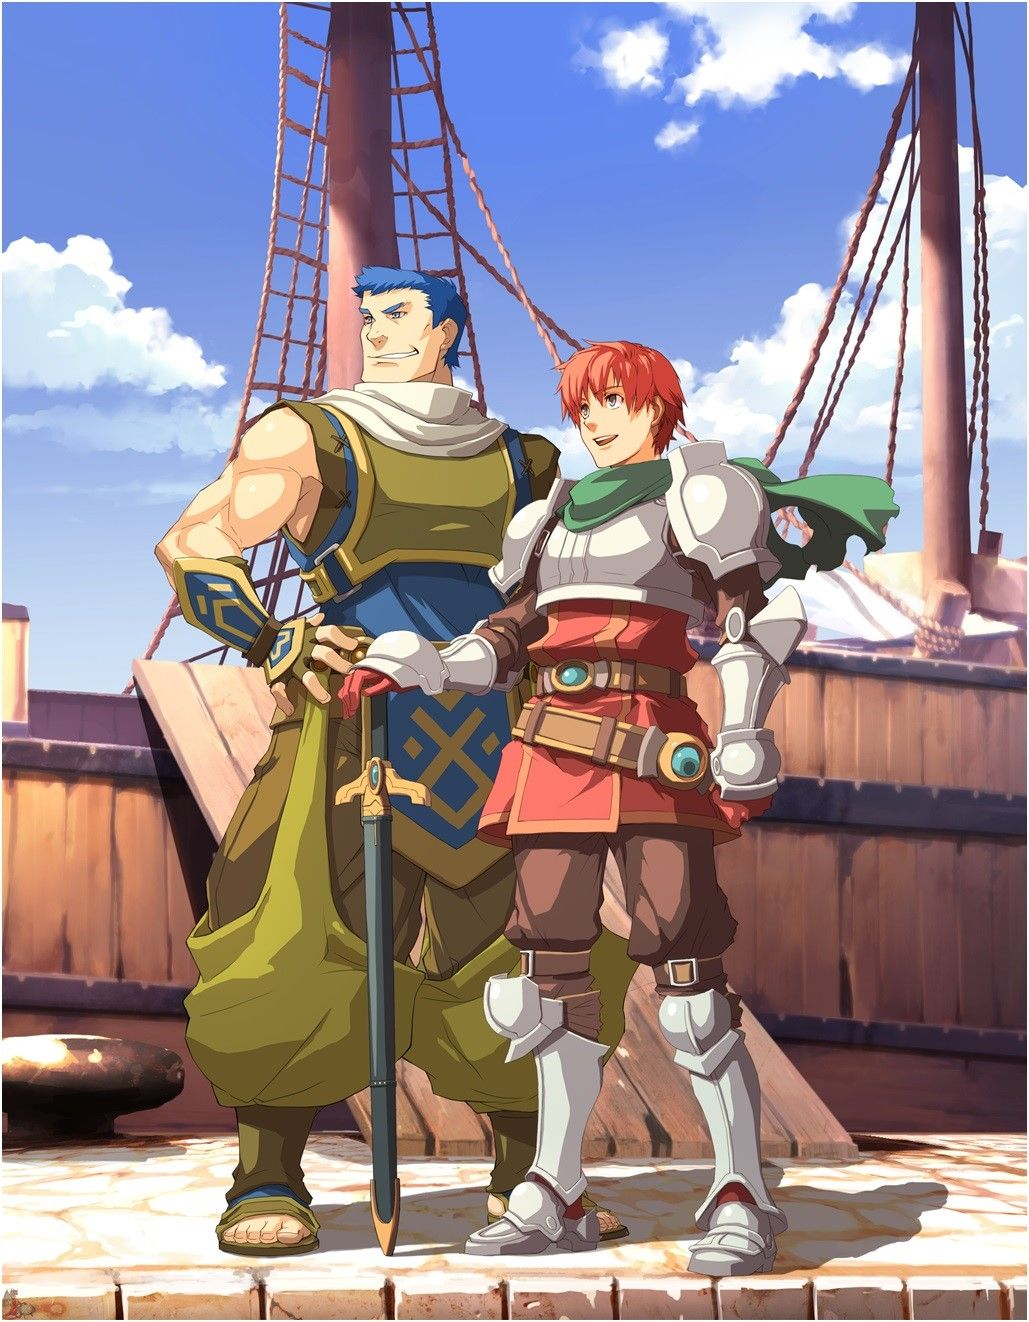 Ys Seven Anime toon, Anime, Video game characters